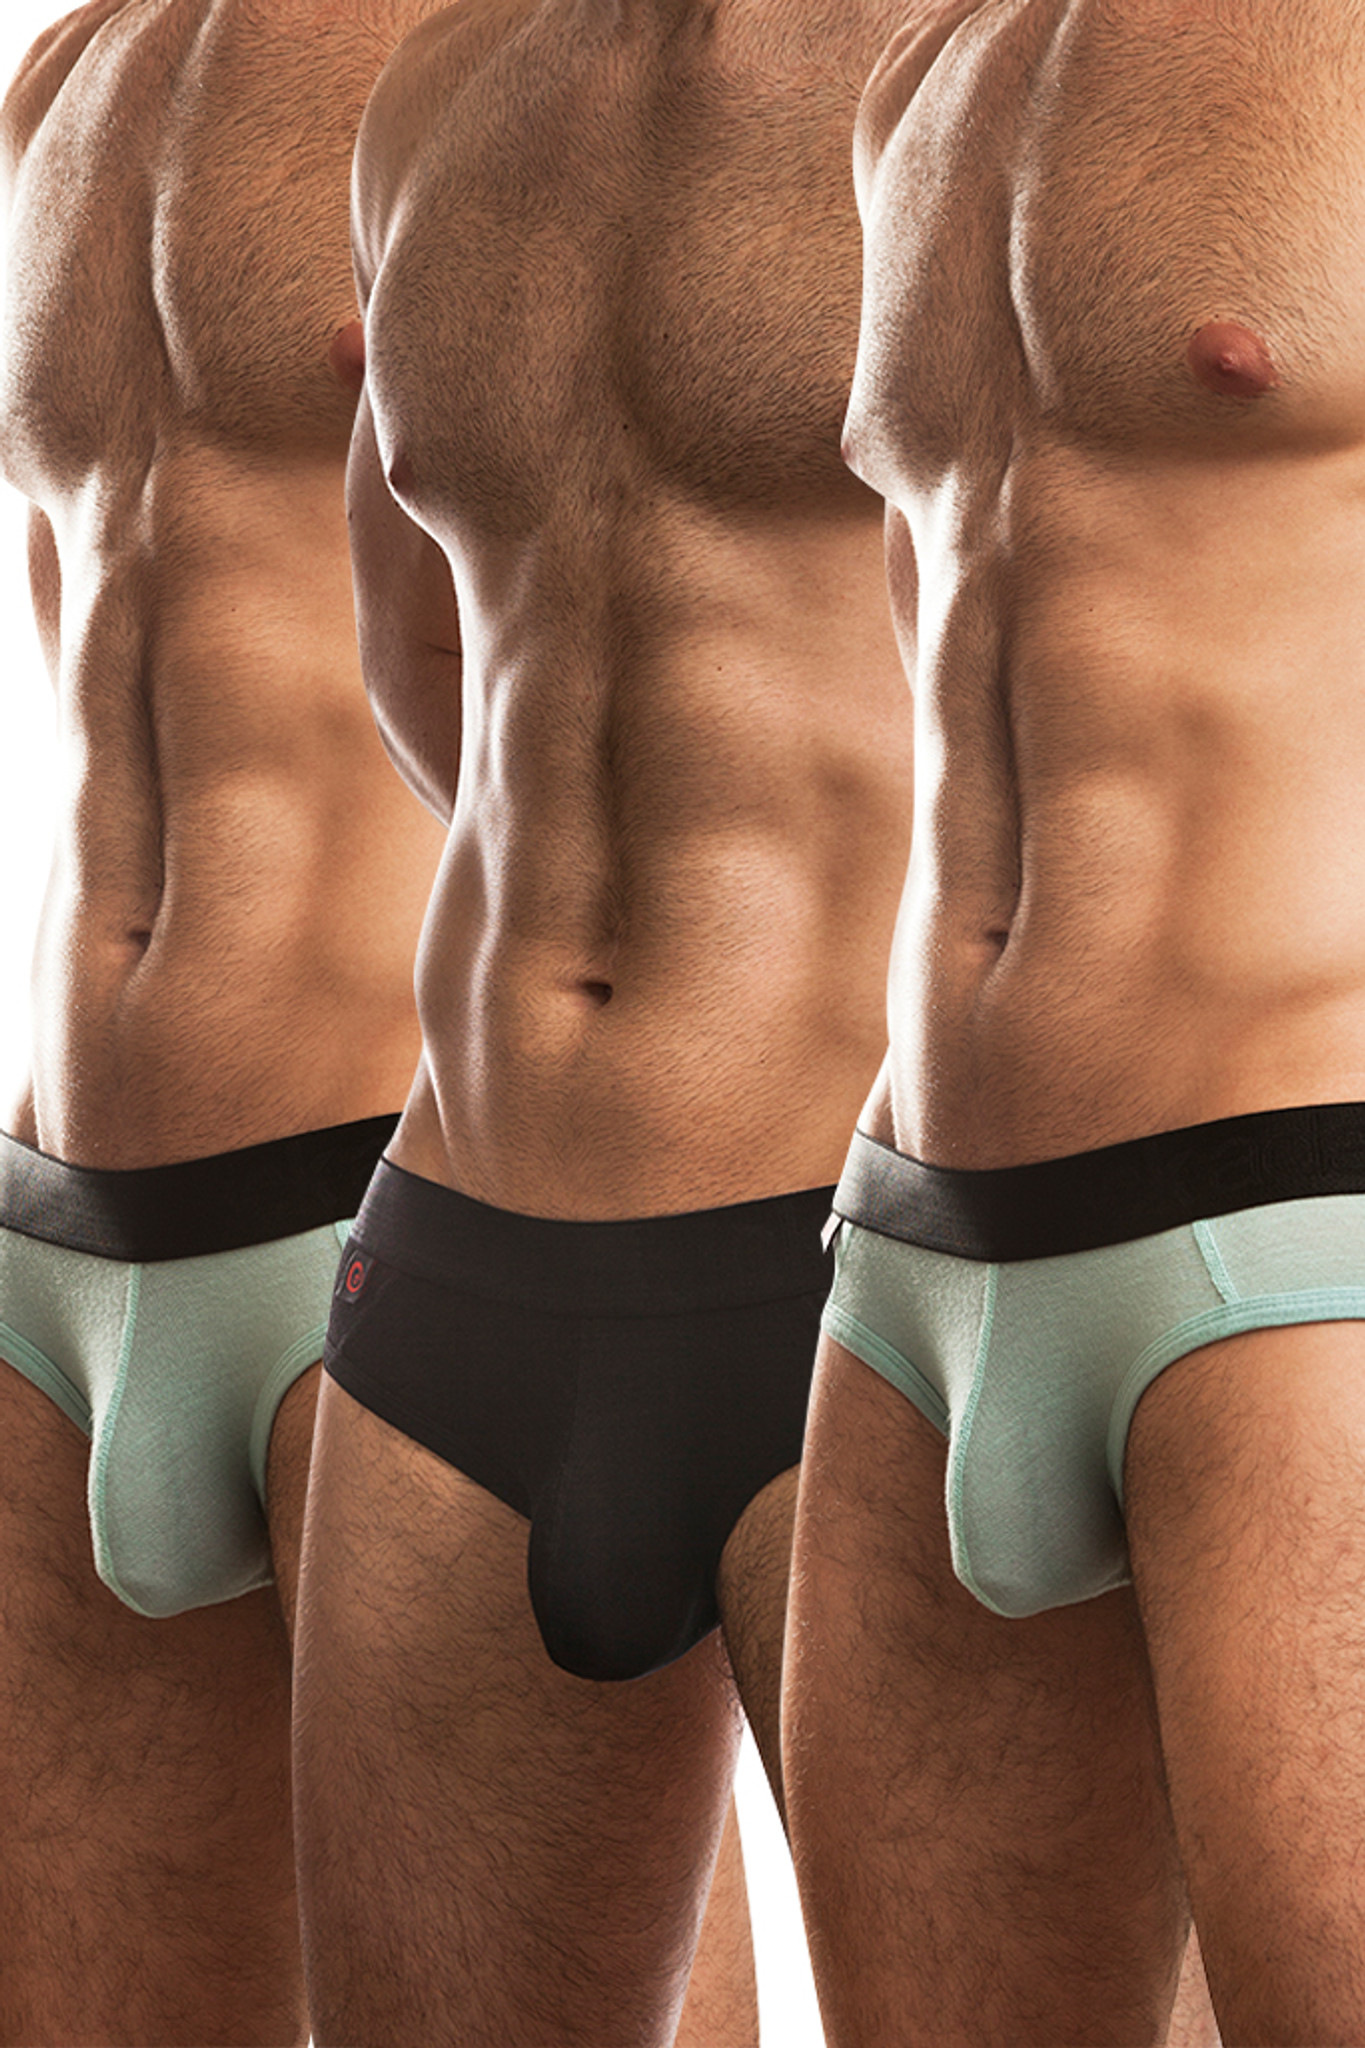 Jack Adams Naked Fit Brief Multi-Pack:  Black (1), Seafoam (2)